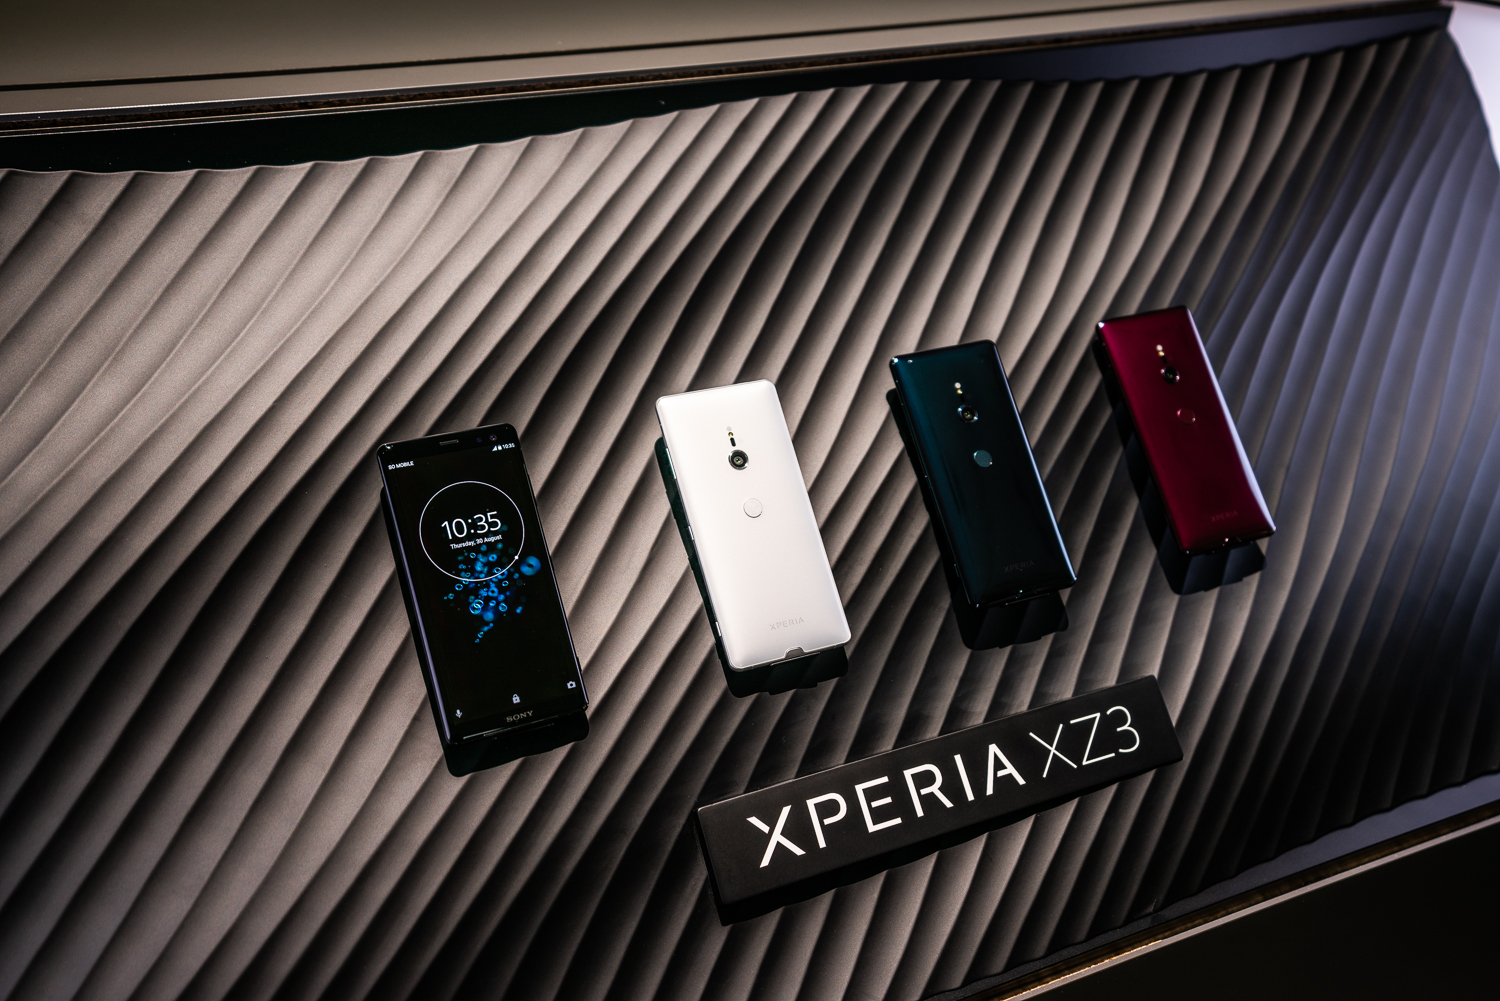 Dc5m United States It In English Created At 2018 09 25 0007 Storagenewsletter Cypress Adds Usb Typec Hub Controller With Sonys Upcoming Flagship The Xperia Xz3 Is Expected To Launch Sometime Later This Year Device Stereo Speakers